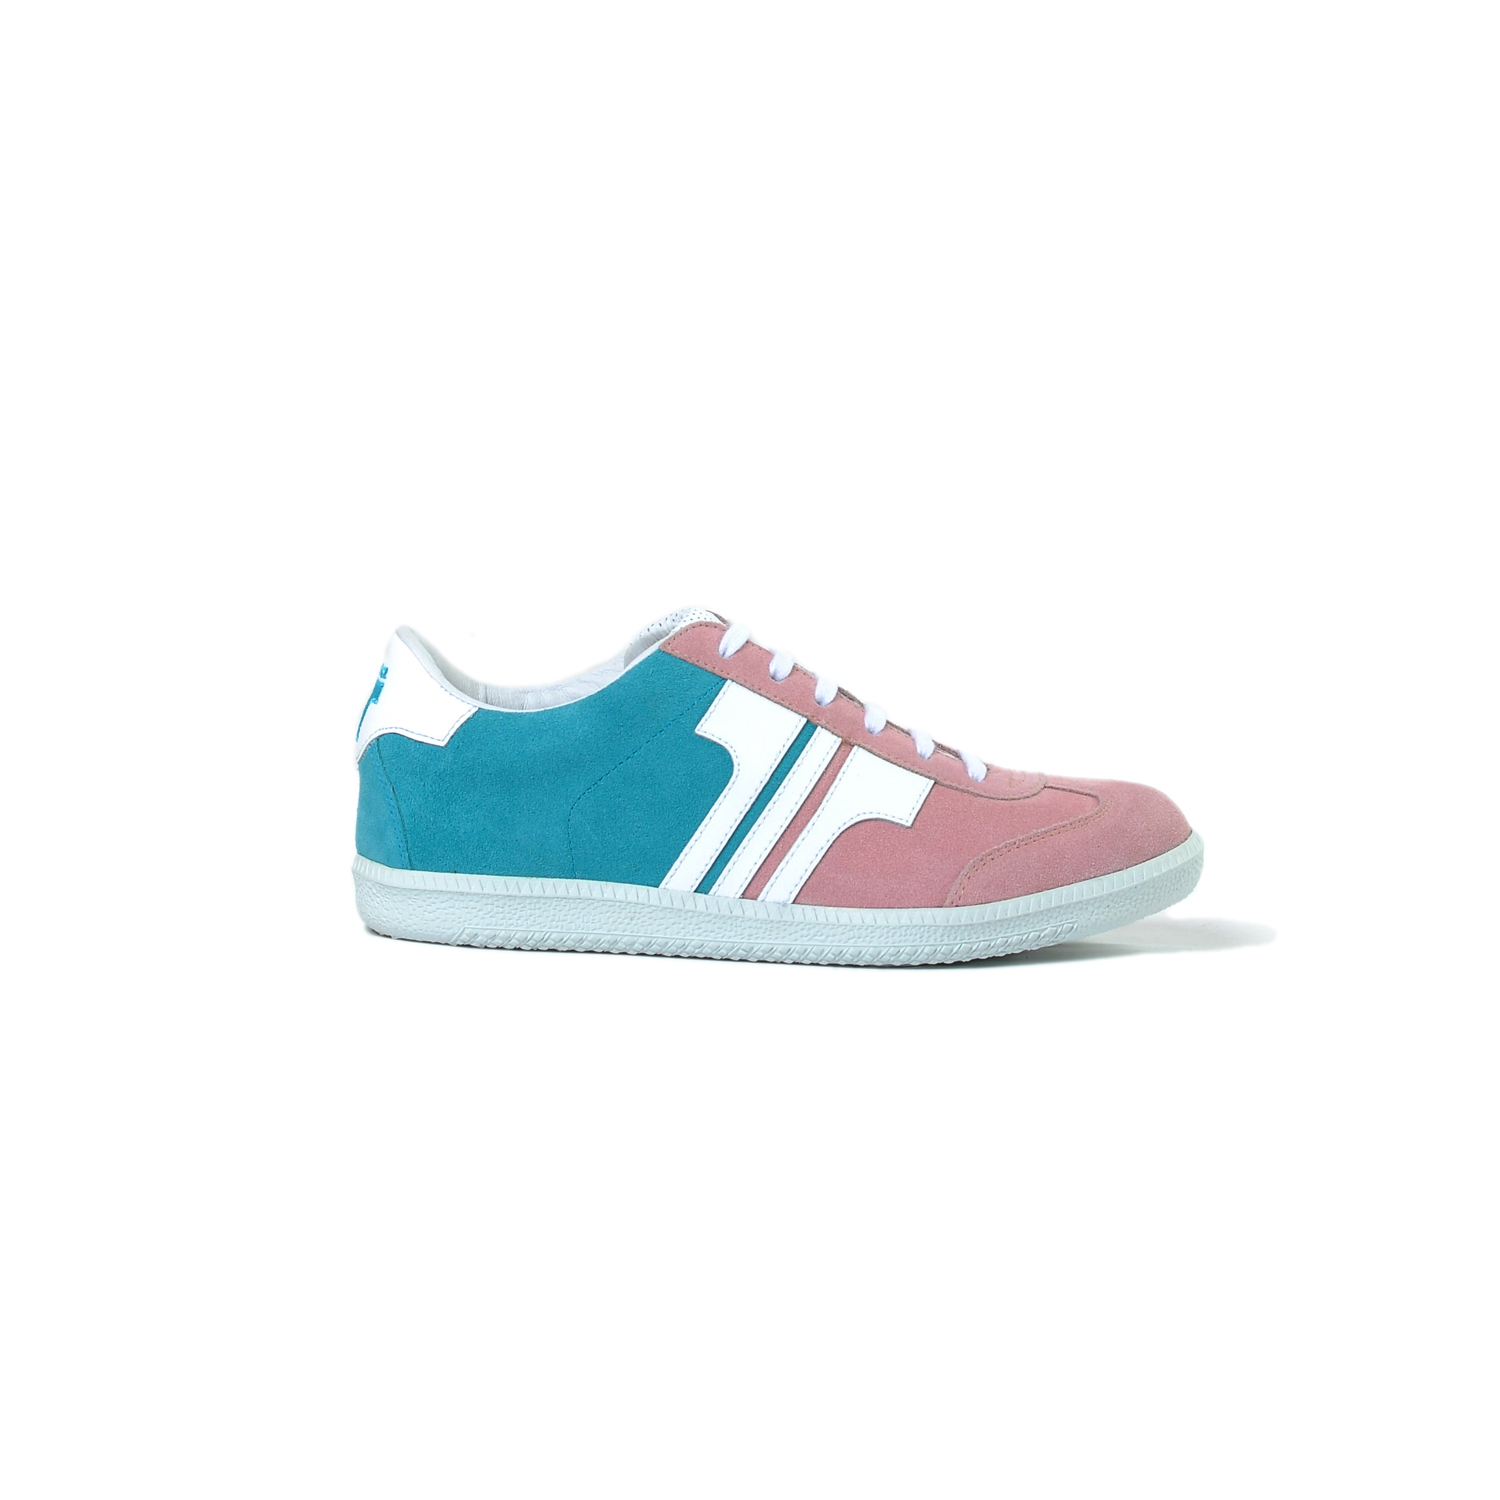 Tisza shoes - Comfort - Candy floss